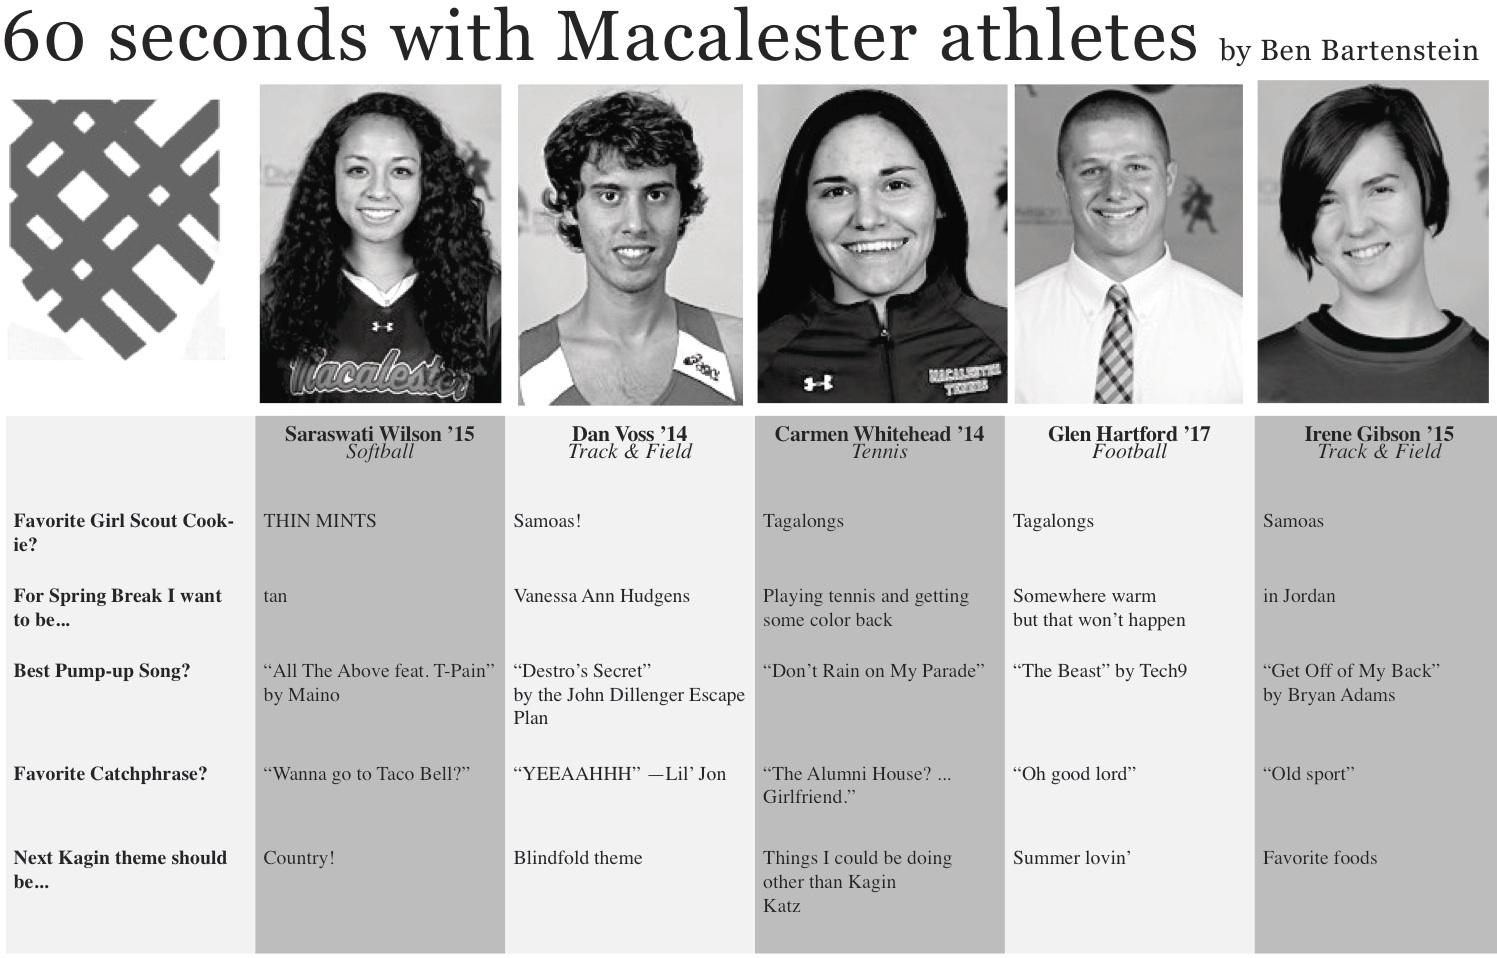 60 Seconds with Macalester Athletes: 3/7/14